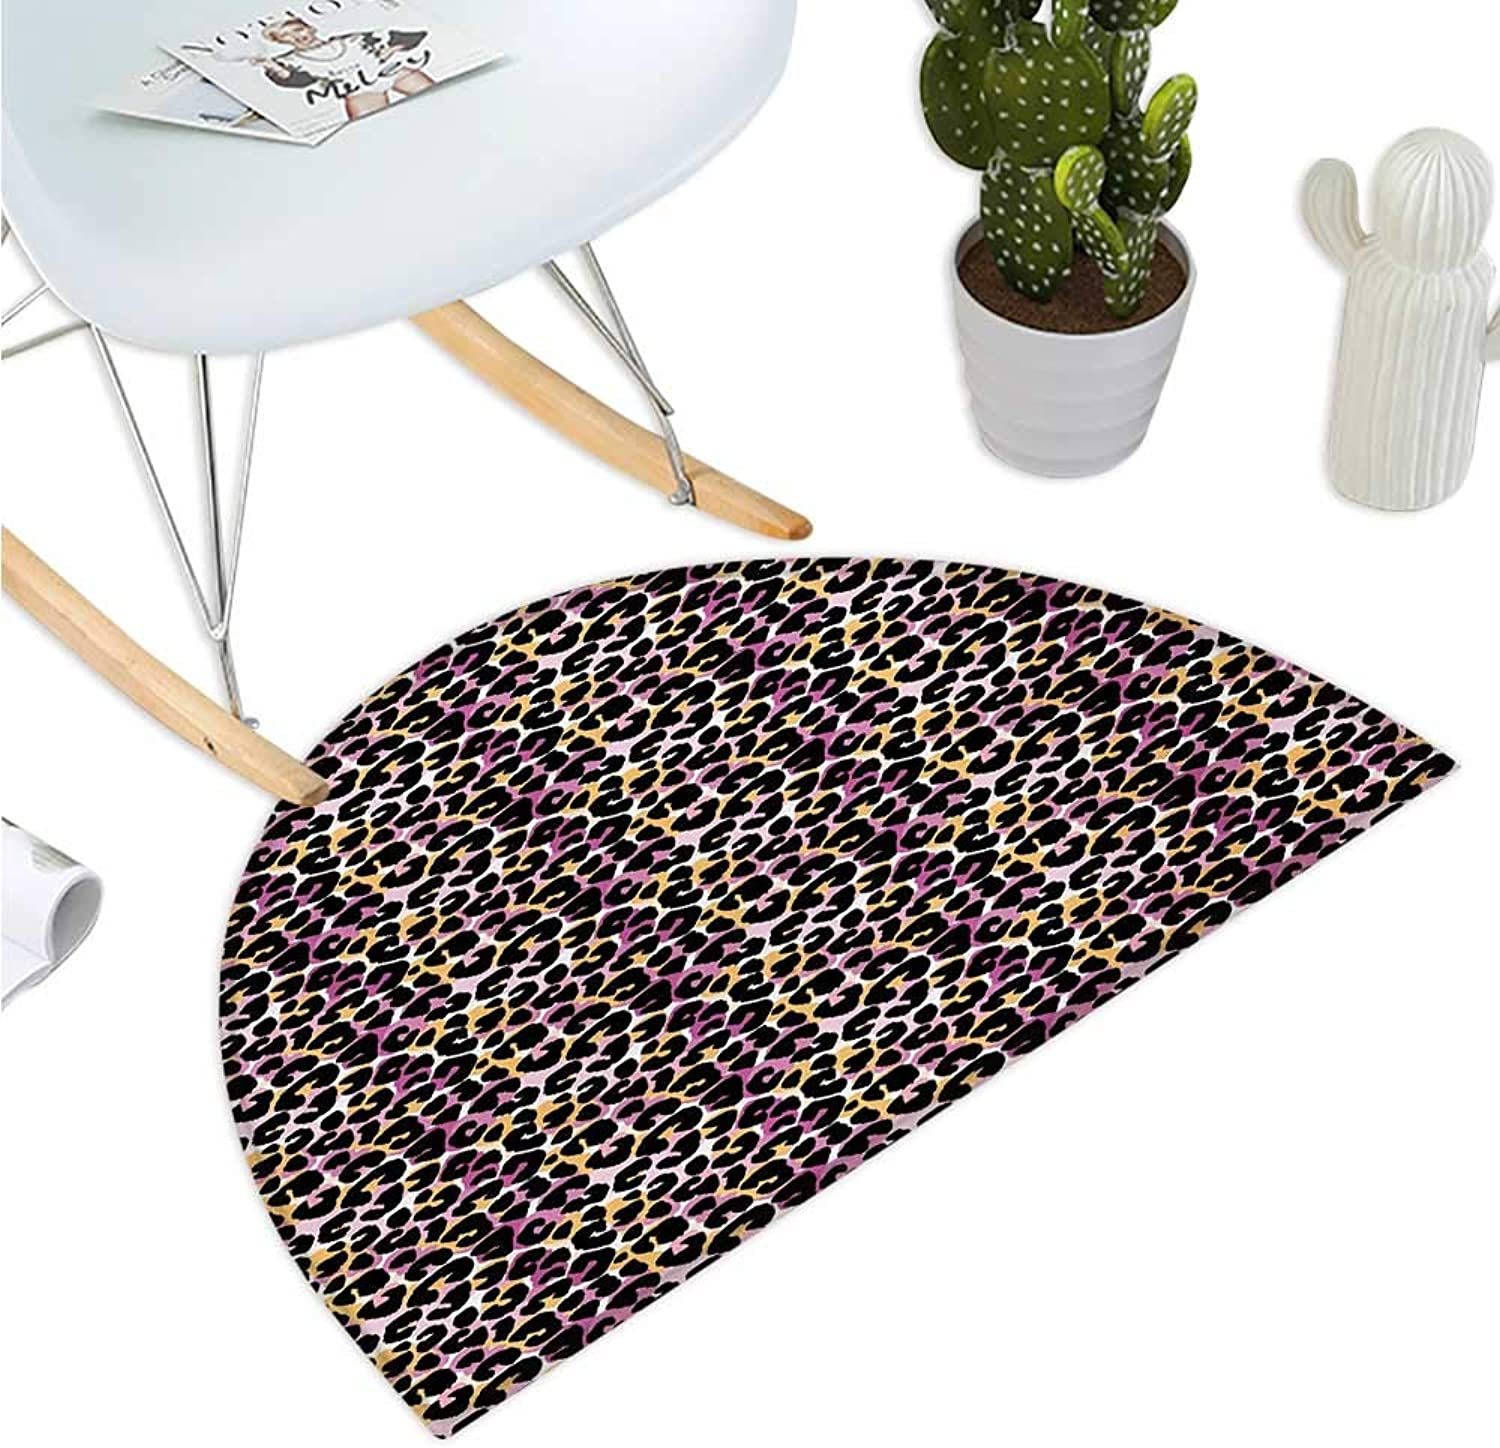 Leopard Print Half Round Door mats Abstract Wild Exotic Animal Skin Pattern in Artistic Style with Vibrant color Entry Door Mat H 47.2  xD 70.8  Multicolor